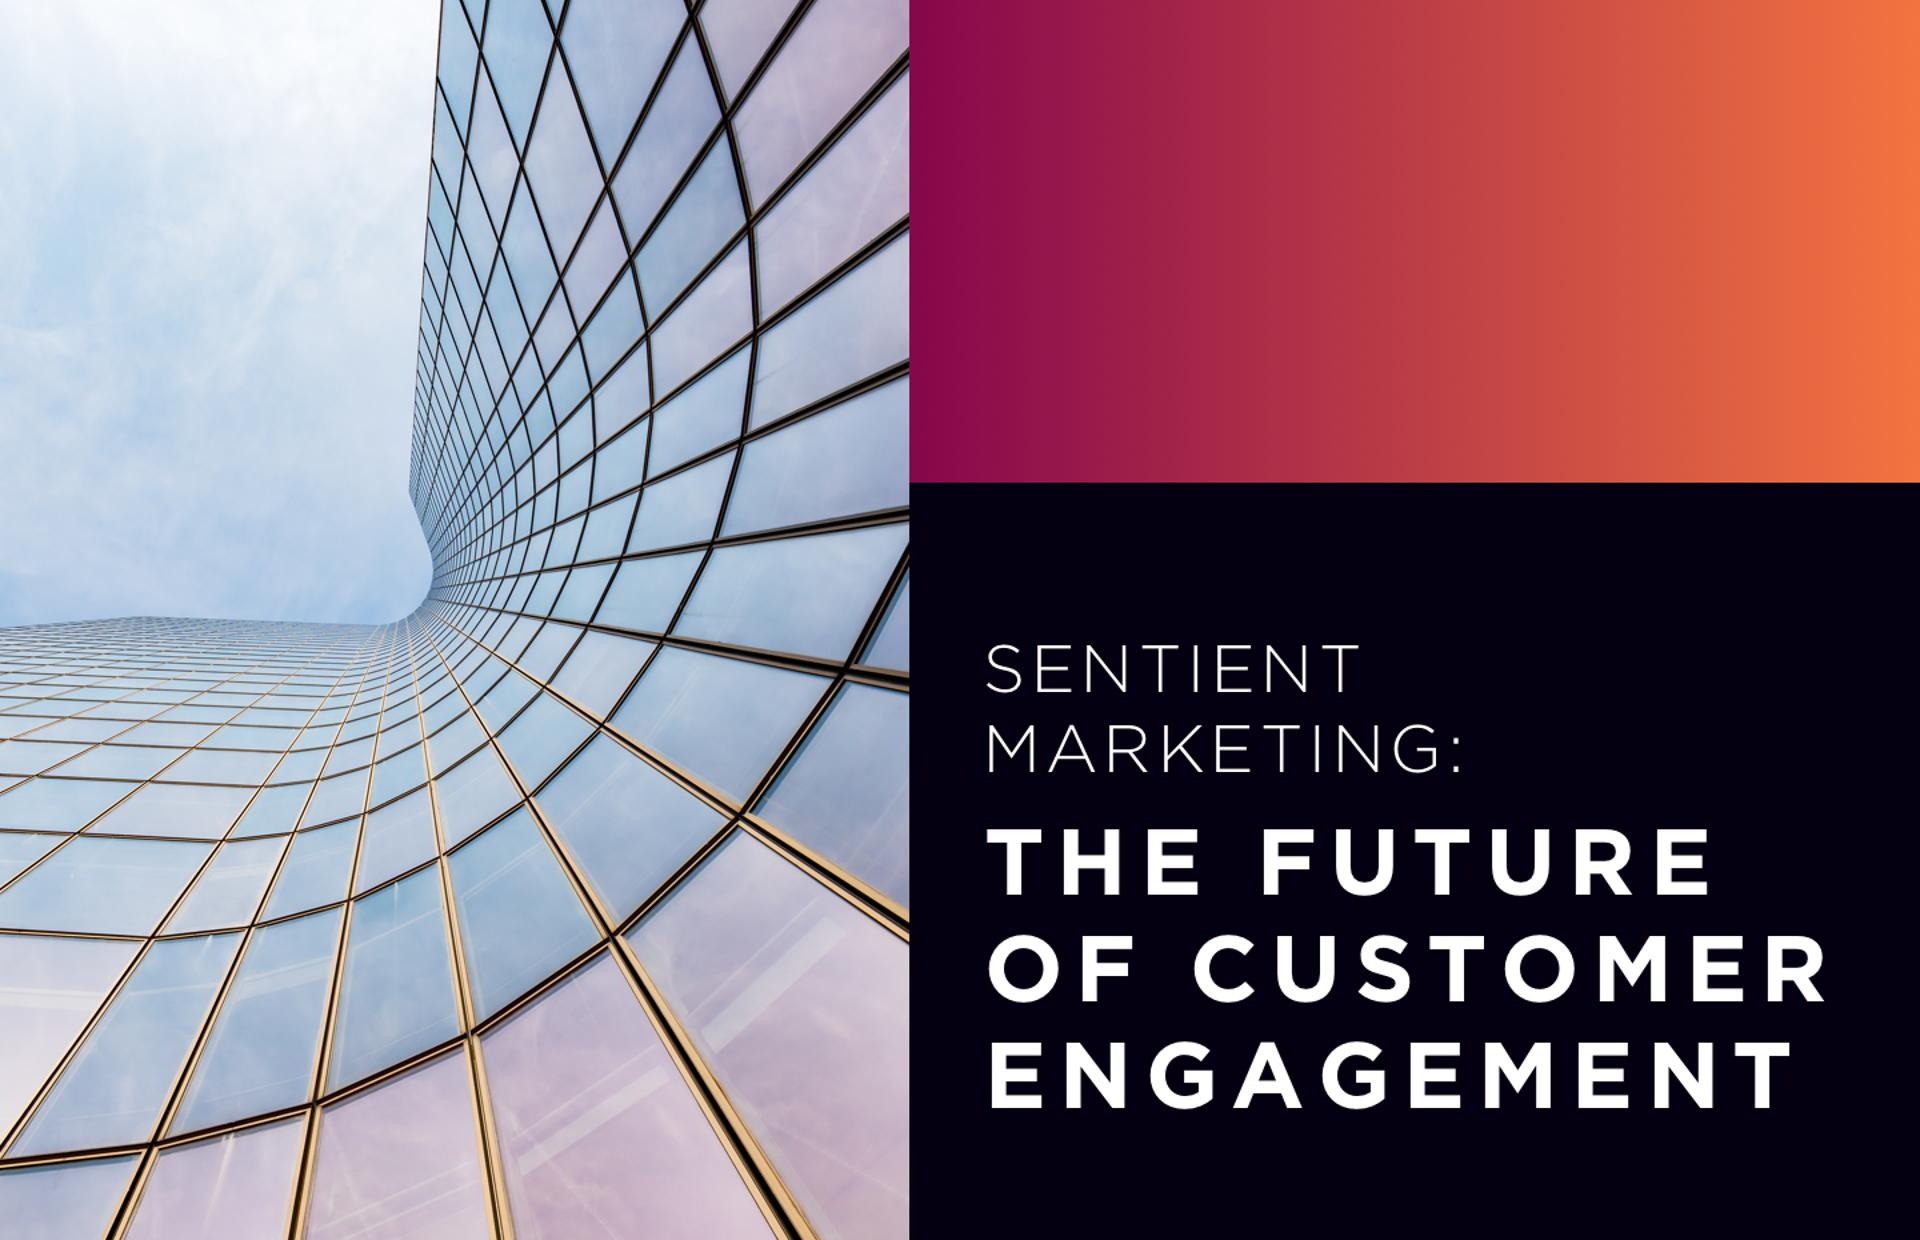 Sentient Marketing: The Future of Customer Engagement